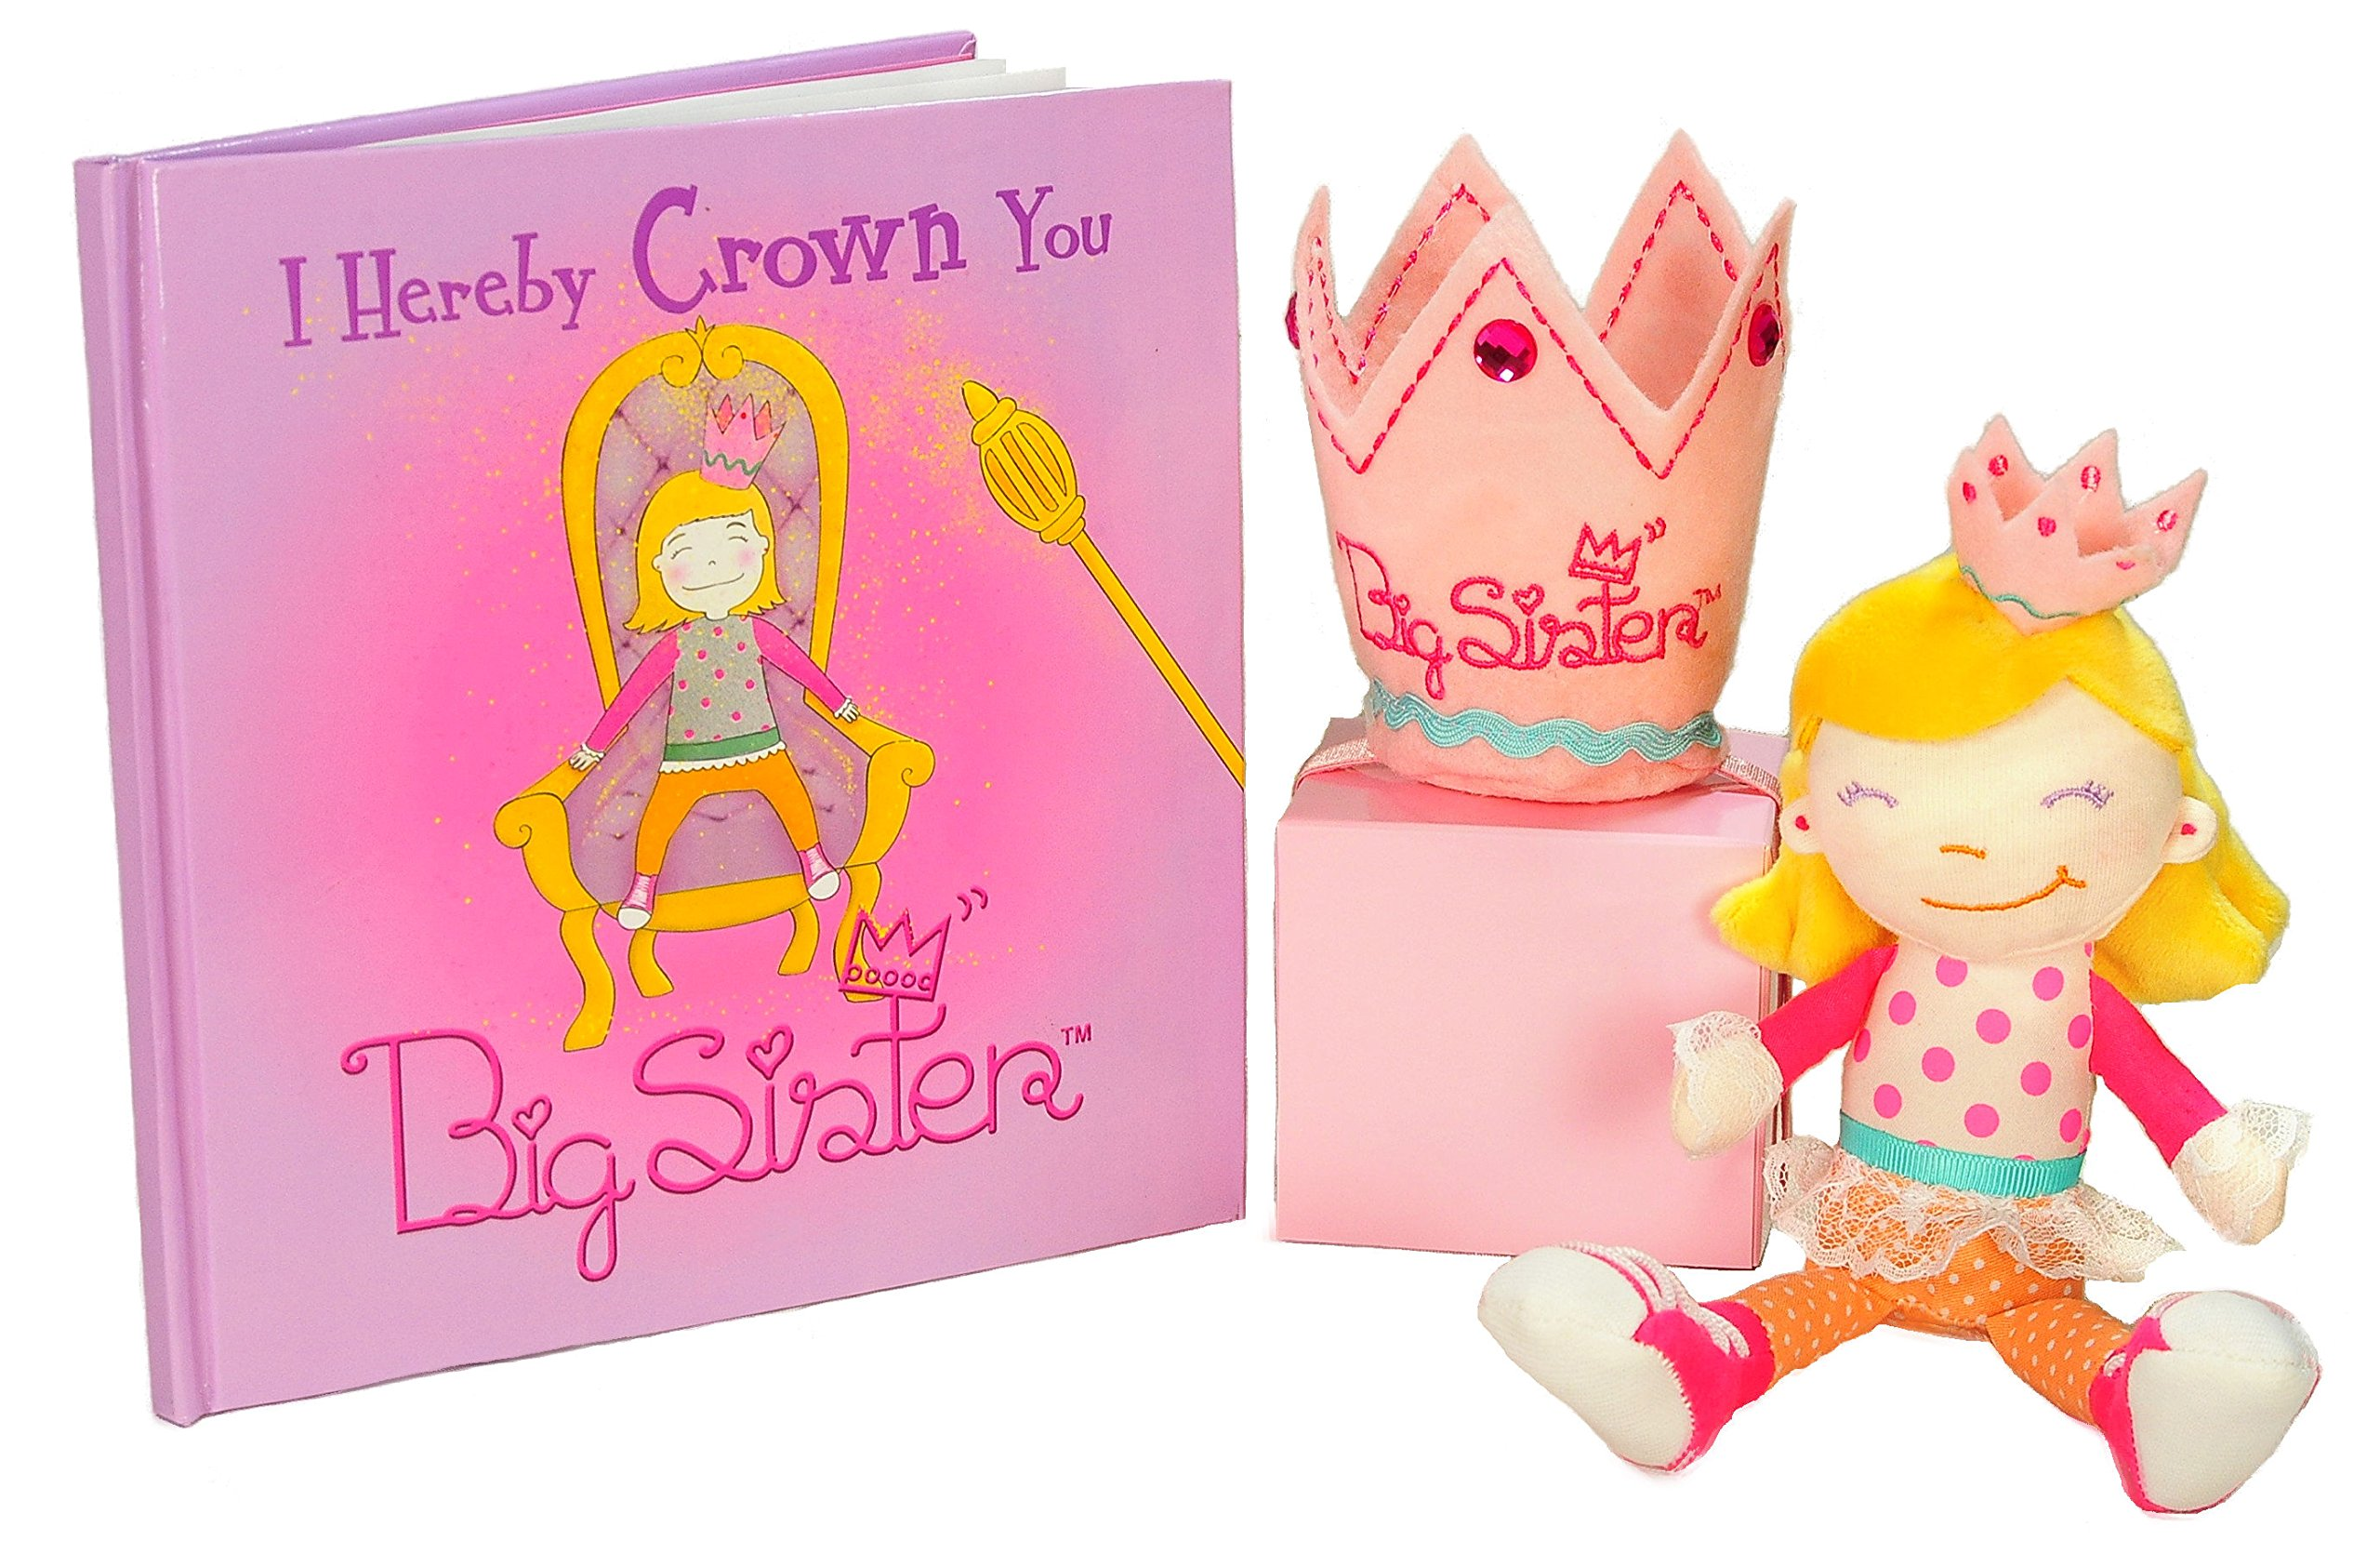 Tickle & Main Big Sister Gift Set- I Hereby Crown You Big Sister Book, Doll, and Child Size Crown